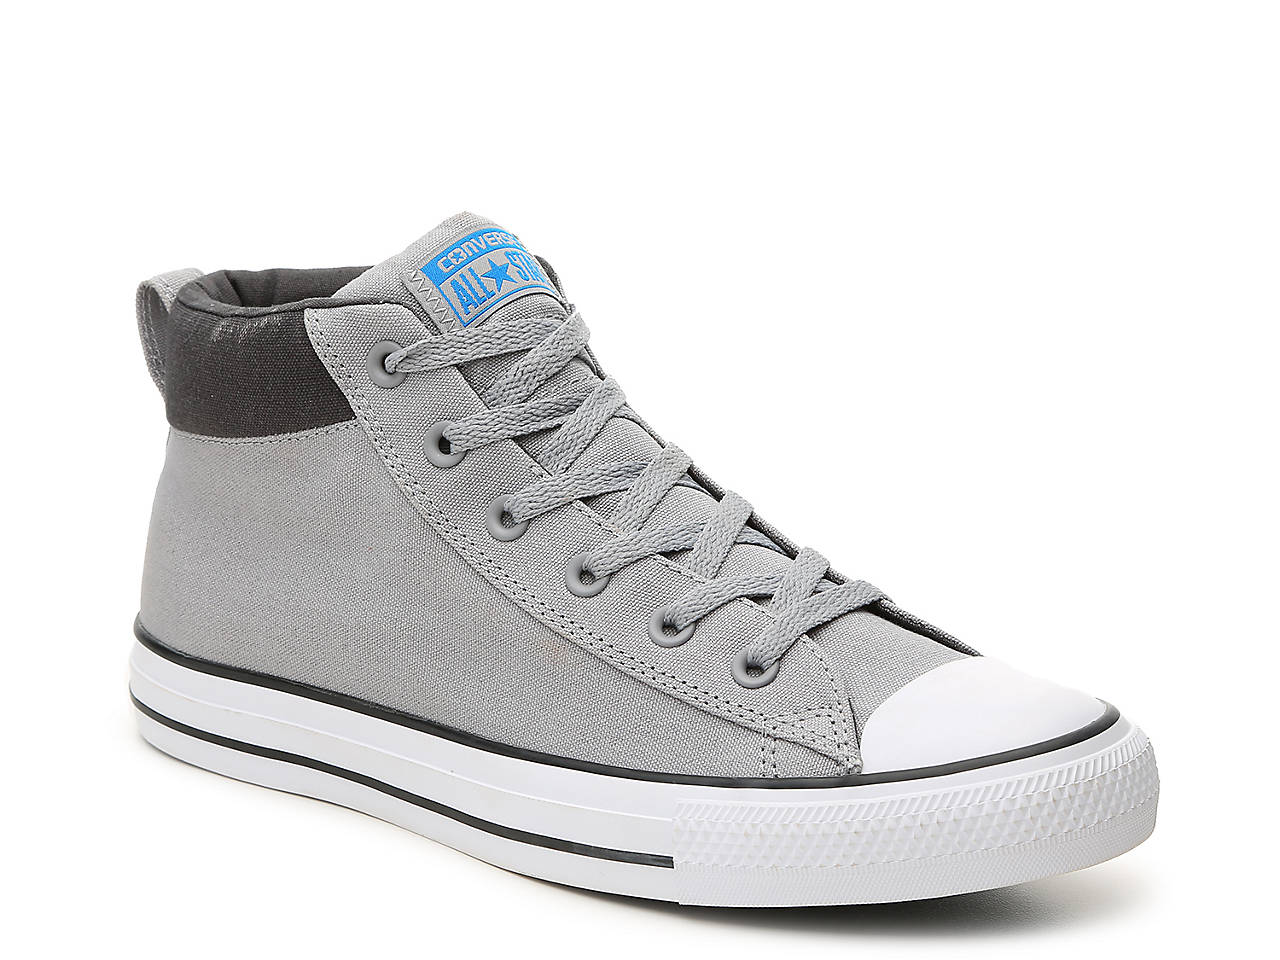 5e35ef3cc96 ... Chuck Taylor All Star Street Mid-Top Sneaker - Men s  Converse ...